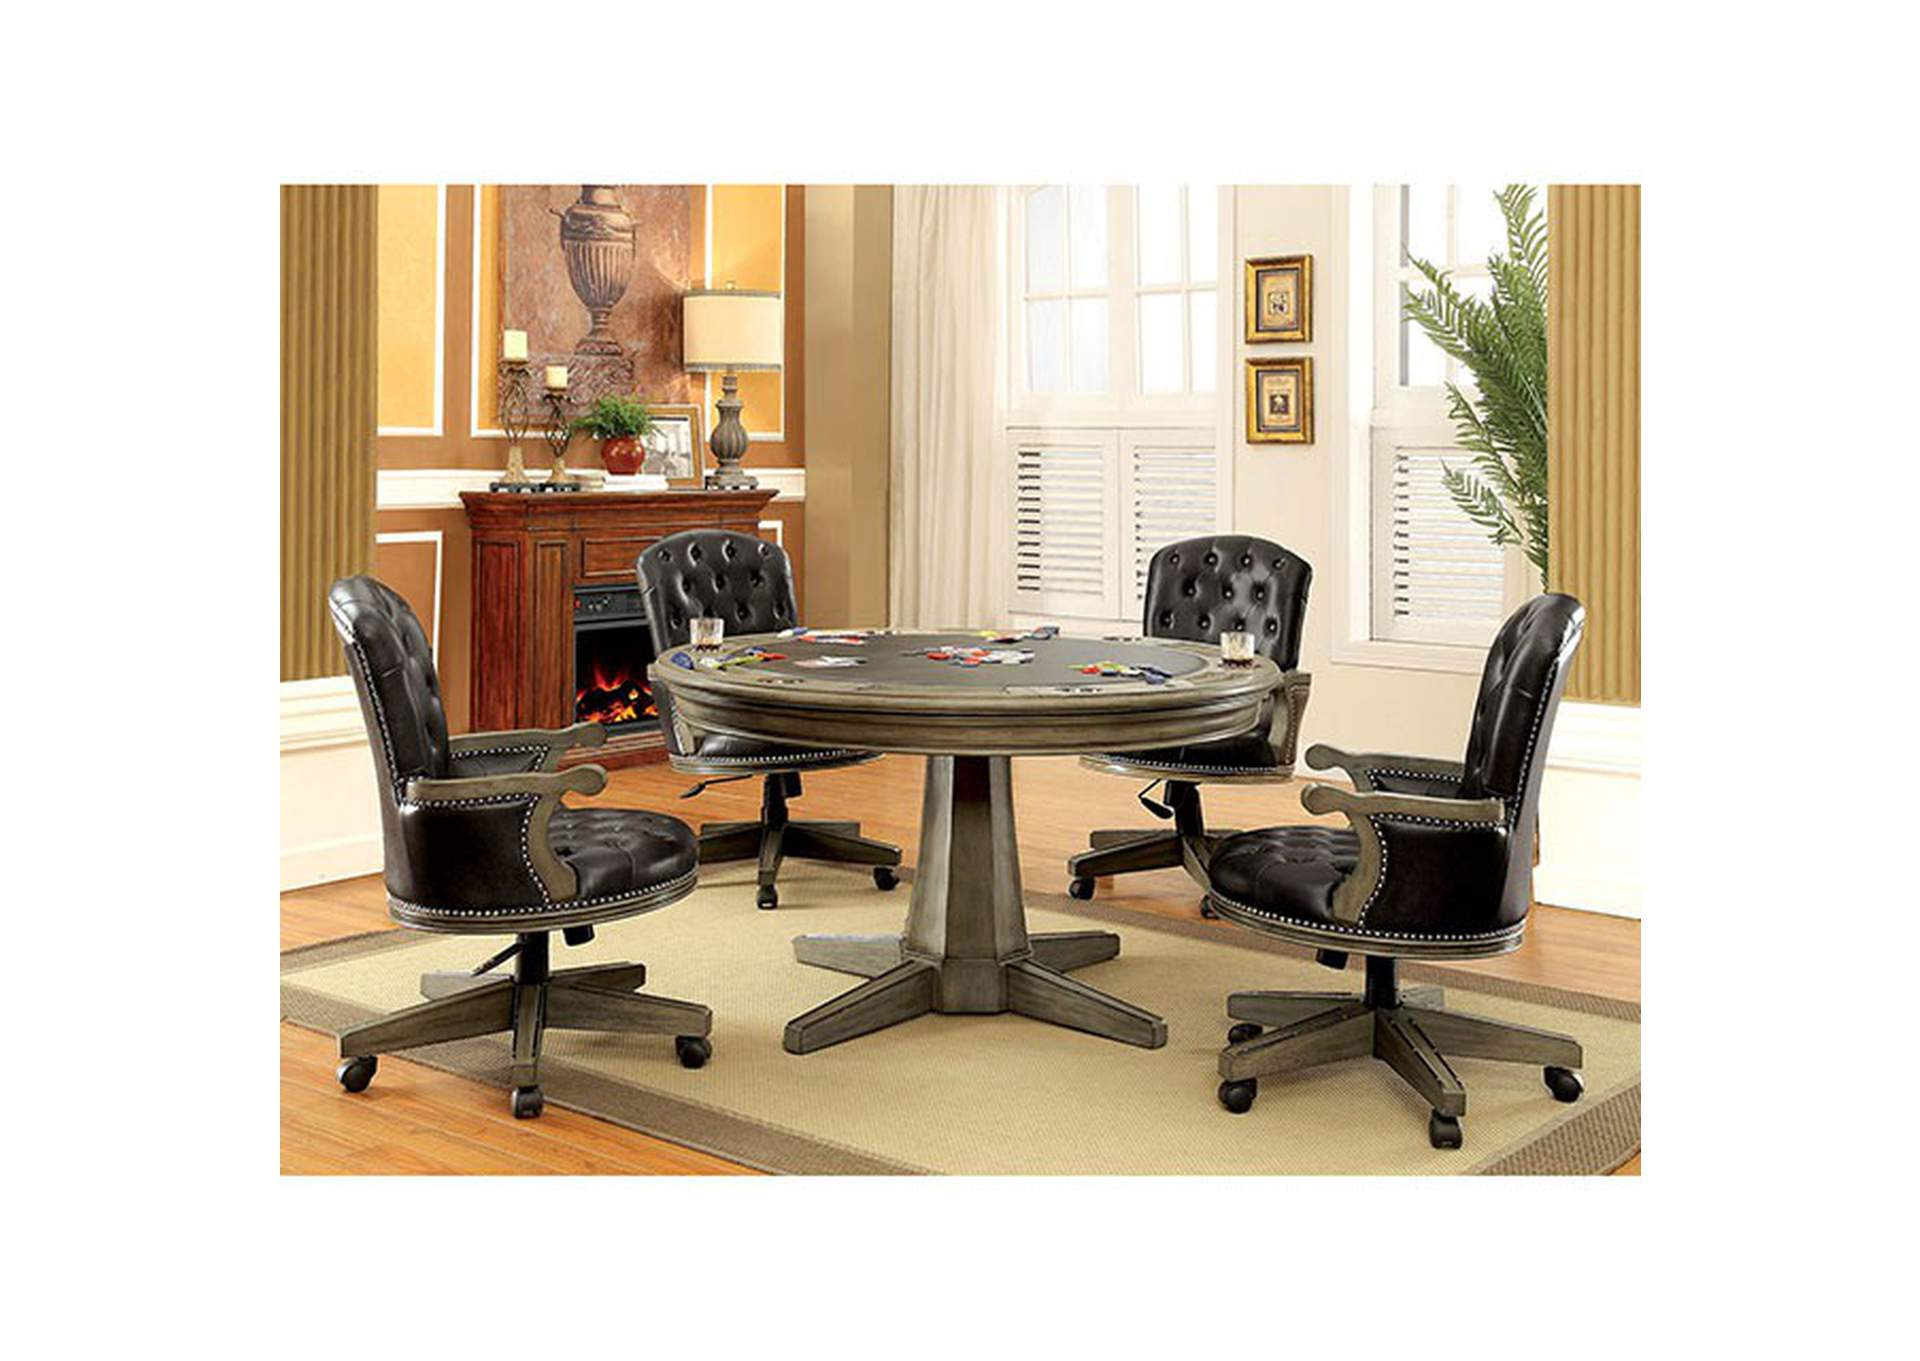 Furniture Ville Bronx Ny Yelena Gray Game Table